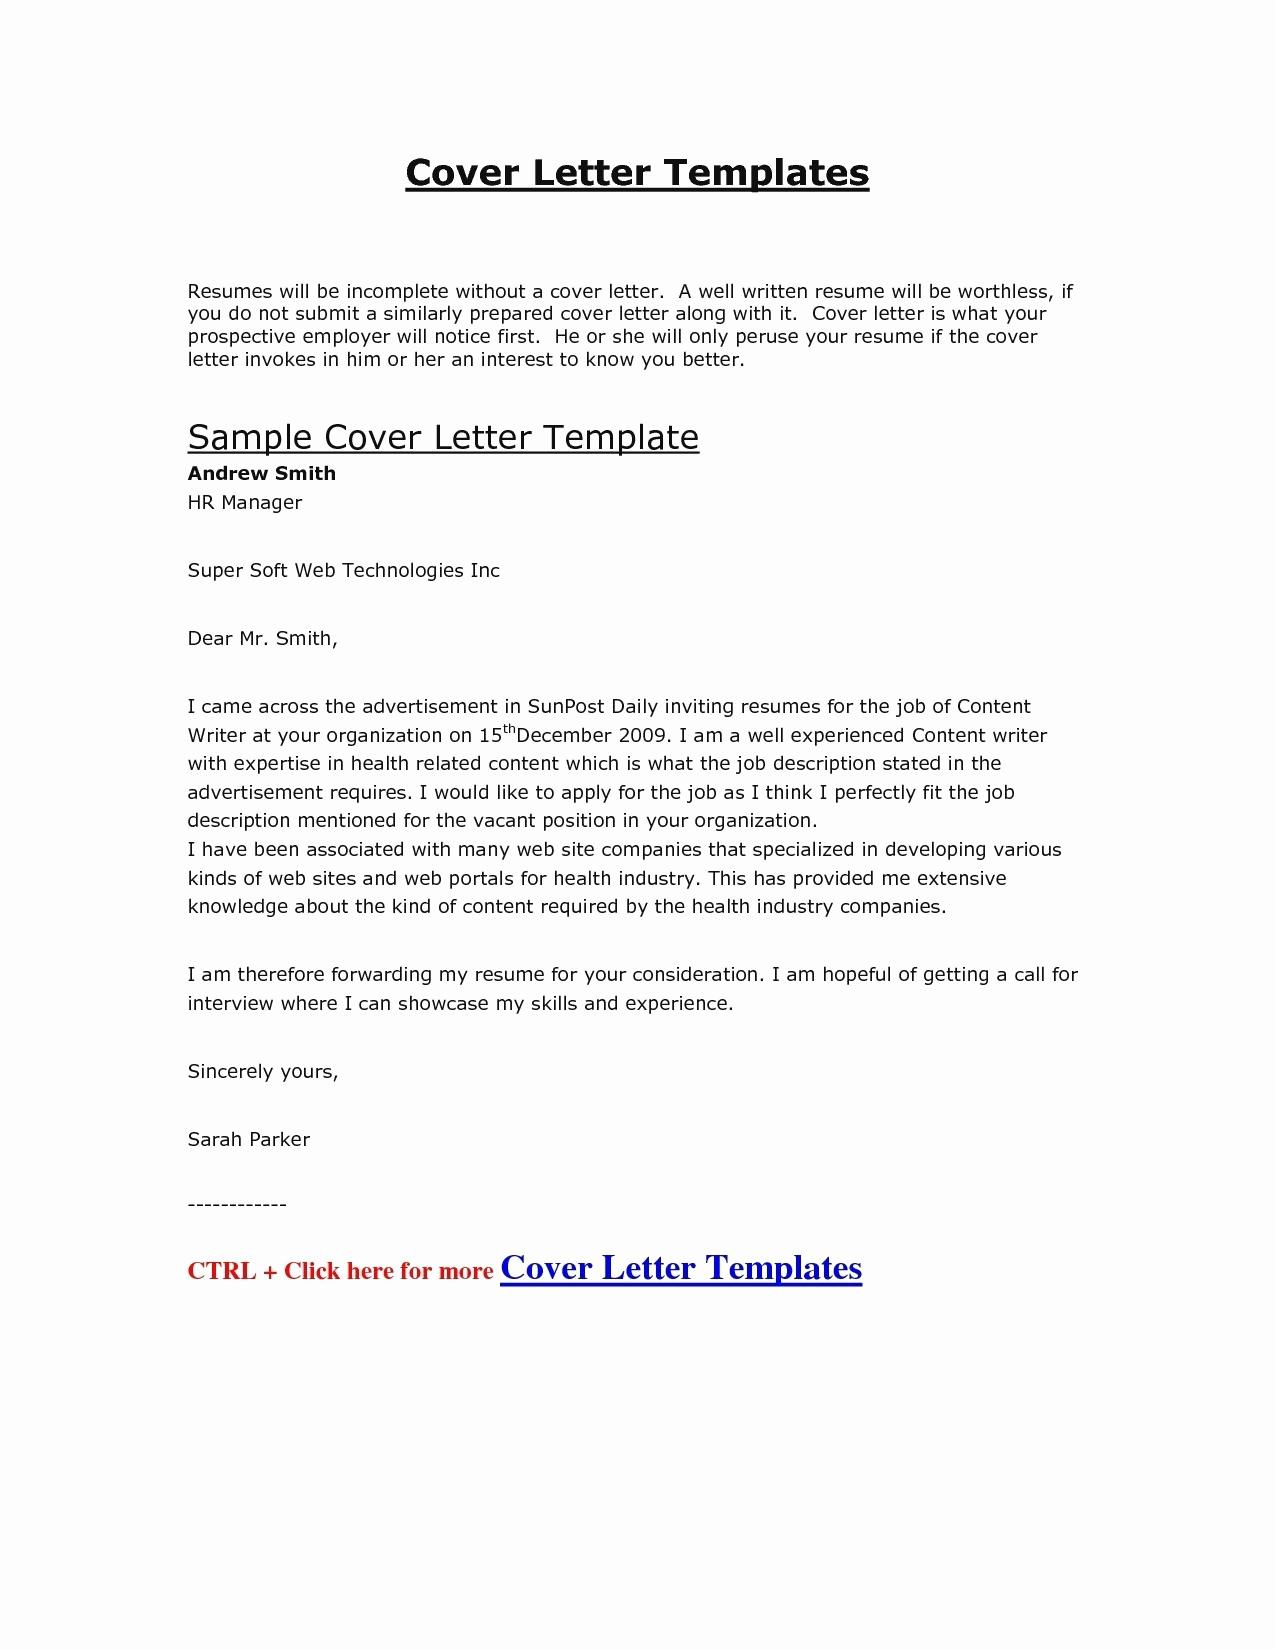 Security Deposit Demand Letter Template Florida - Resume Templates Poppycockreviews